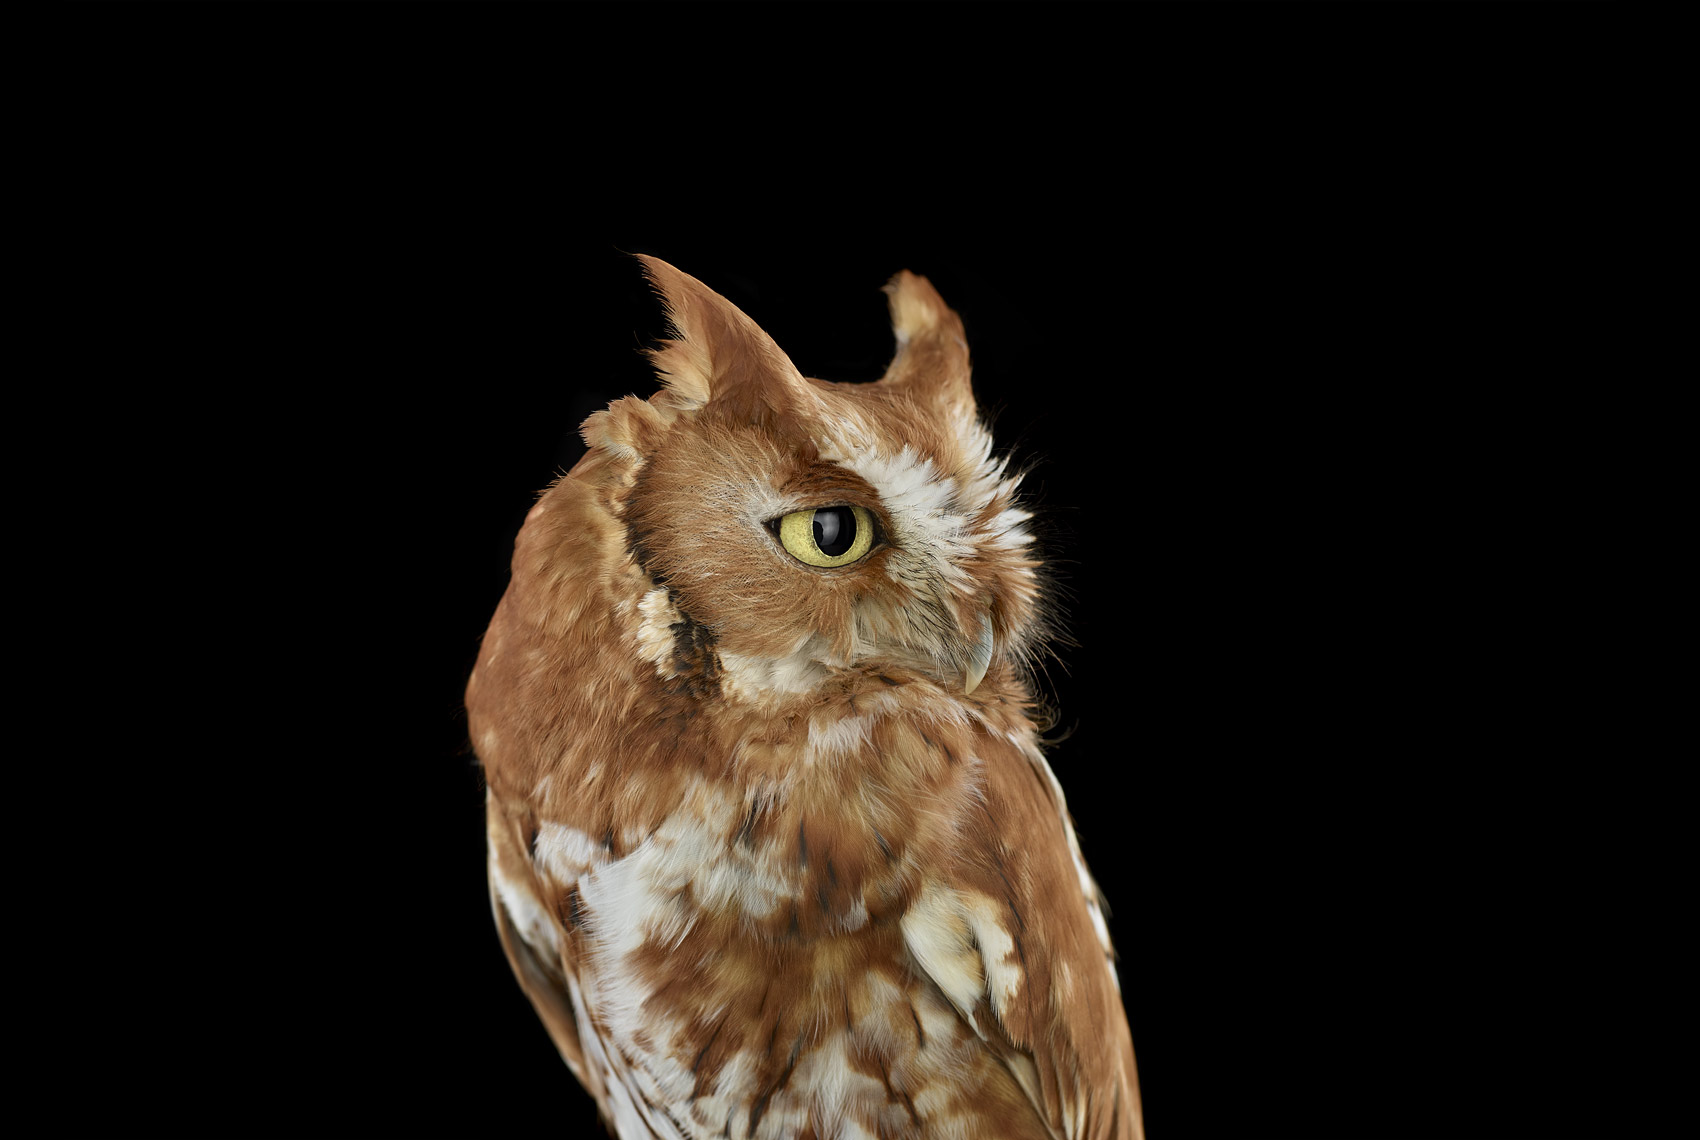 Eastern screech owl profile portrait by fine art wildlife photographer Brad Wilson